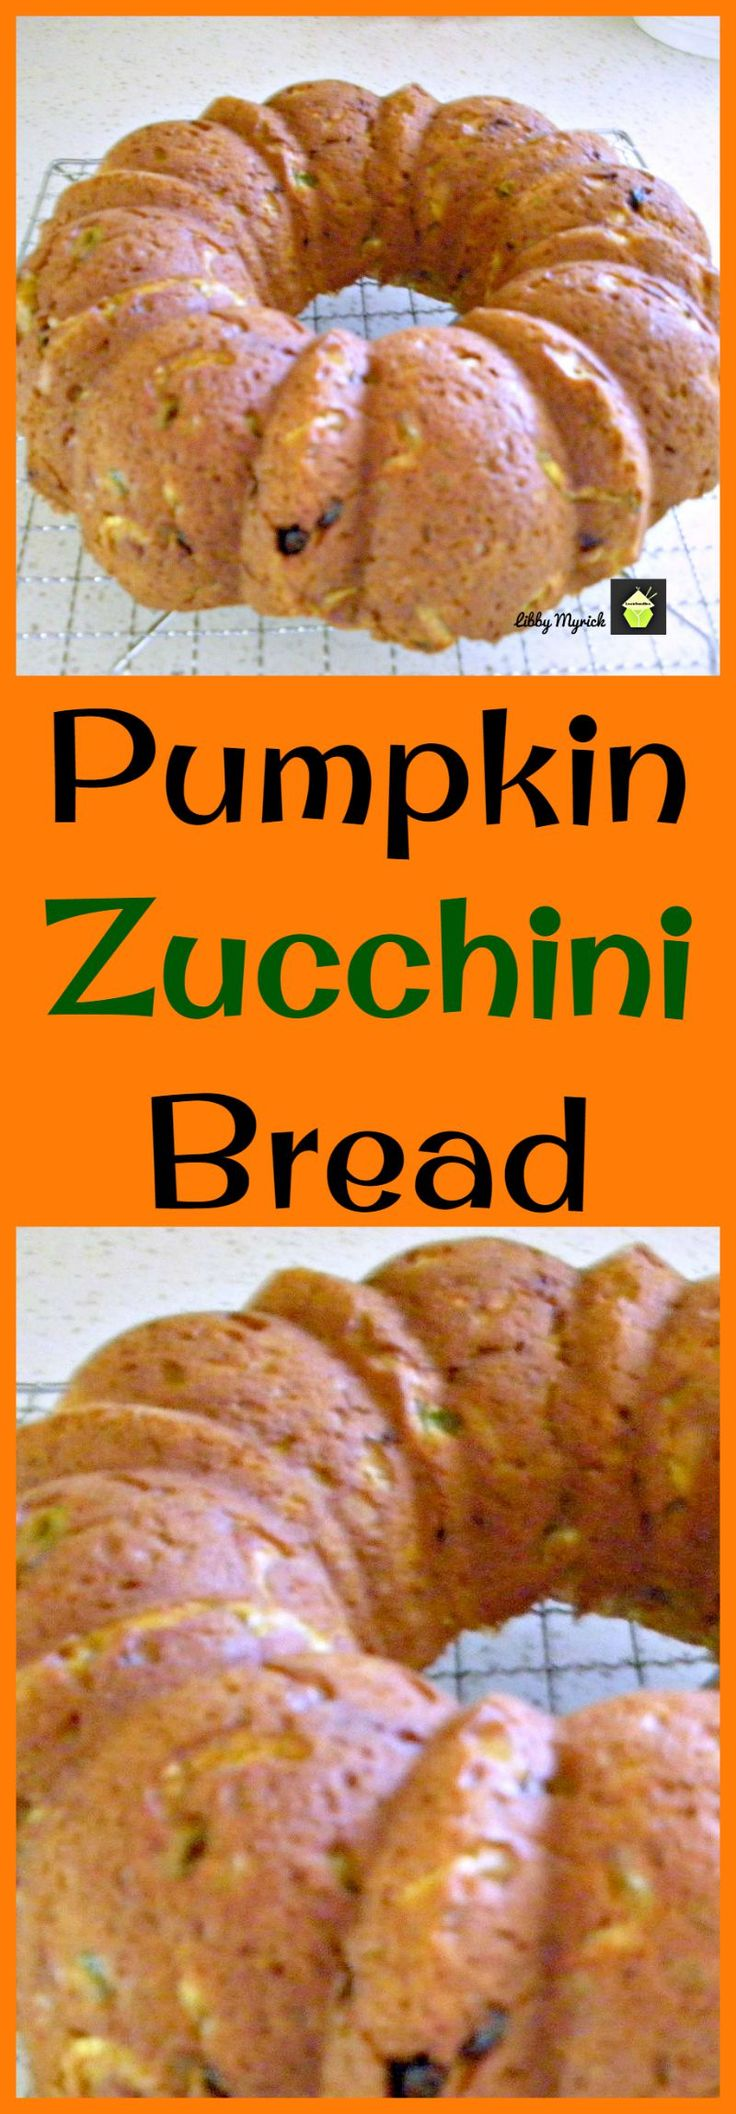 Pumpkin Zucchini Bread, An easy recipe with fabulous aromas and great tasting. Freezer friendly and a perfect way to enjoy zucchini! | Lovefoodies.com